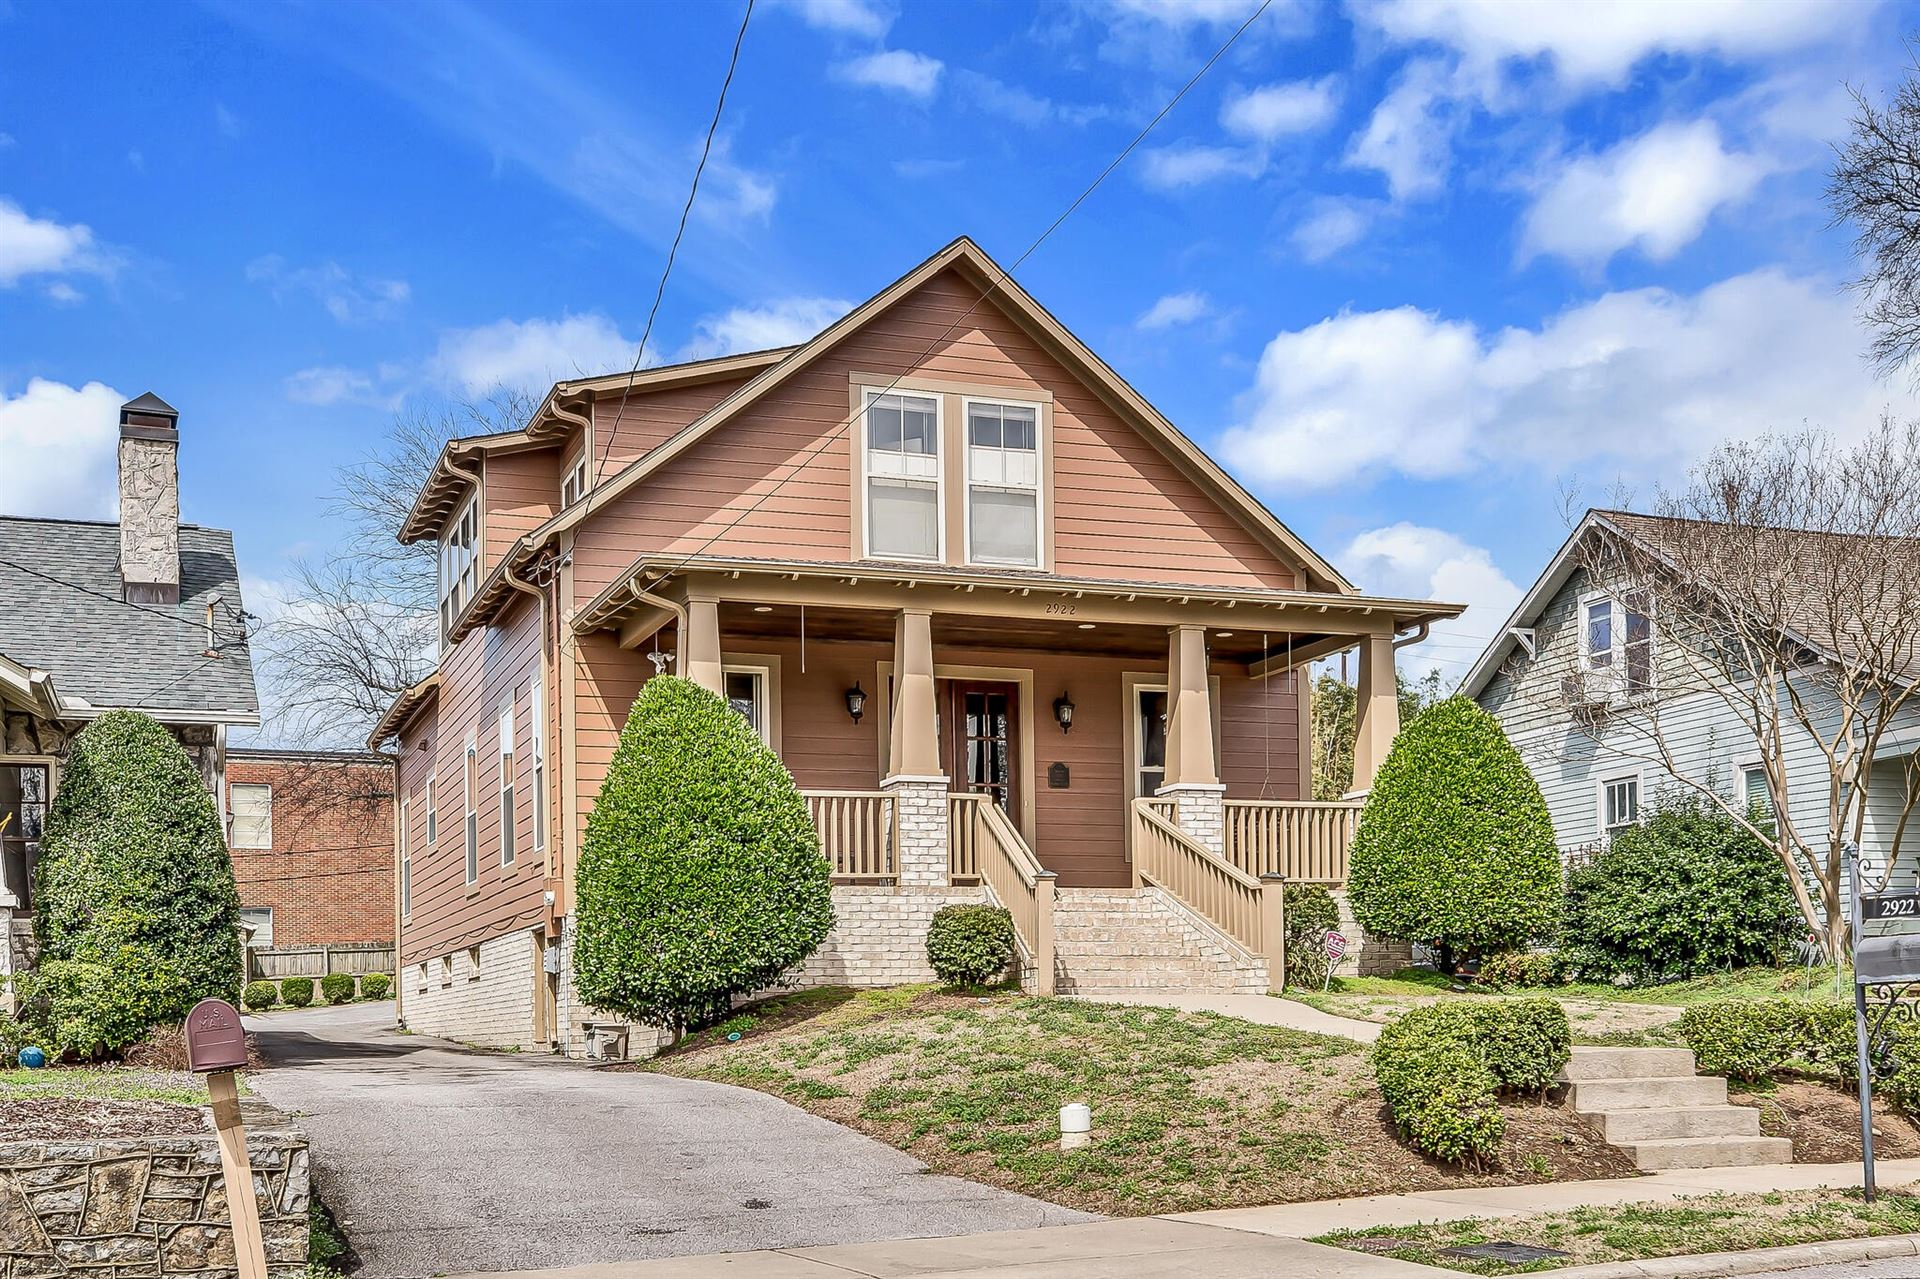 Photo of 2922 Westmoreland Dr, Nashville, TN 37212 (MLS # 2236229)